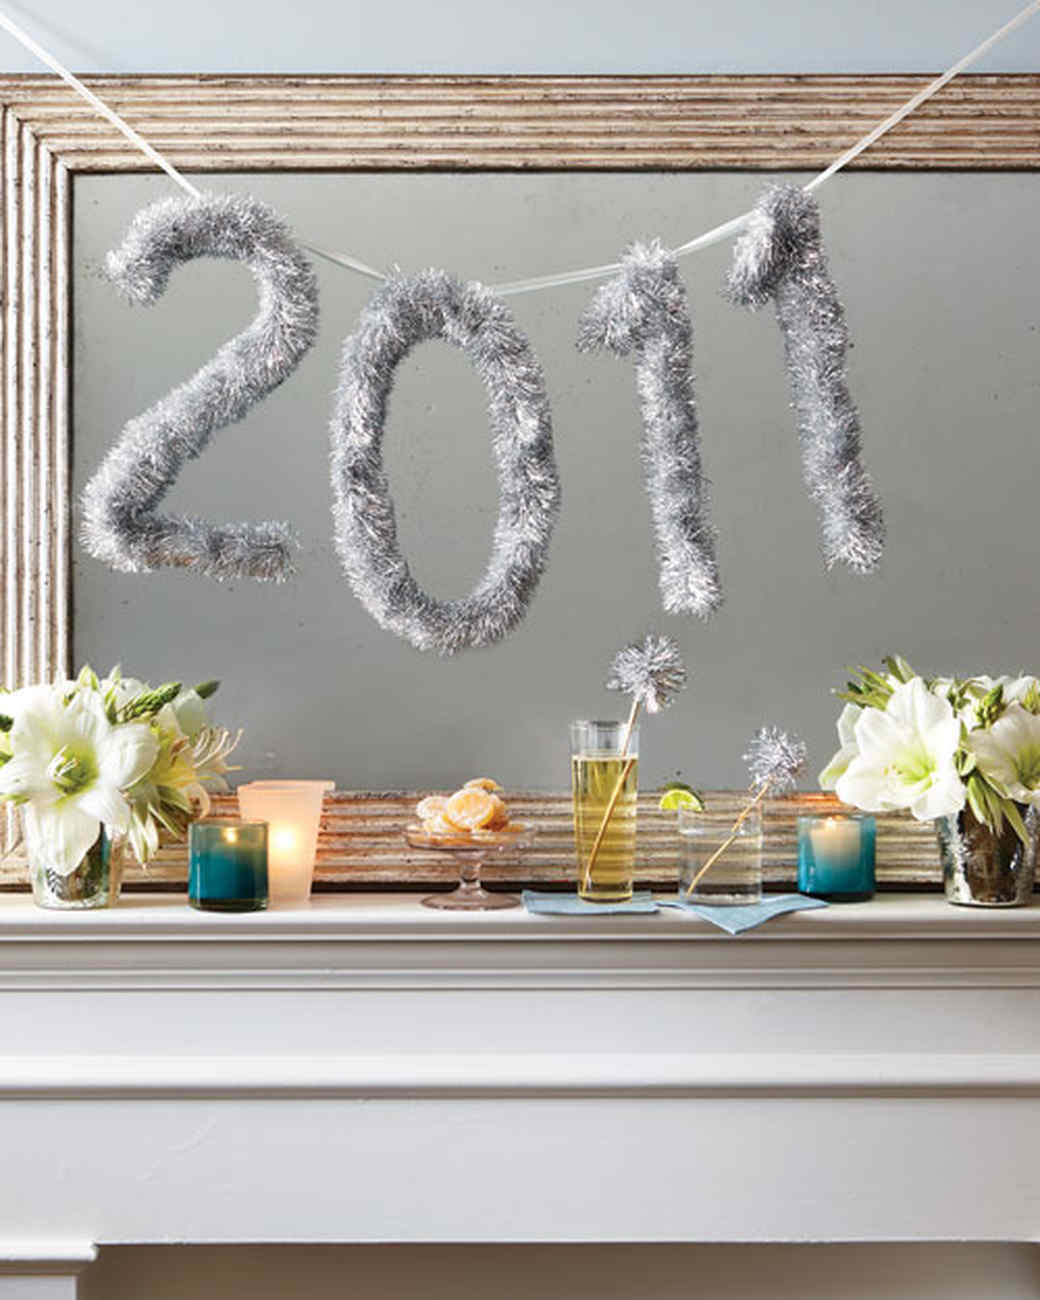 Decorations for New Year's Eve | Martha Stewart